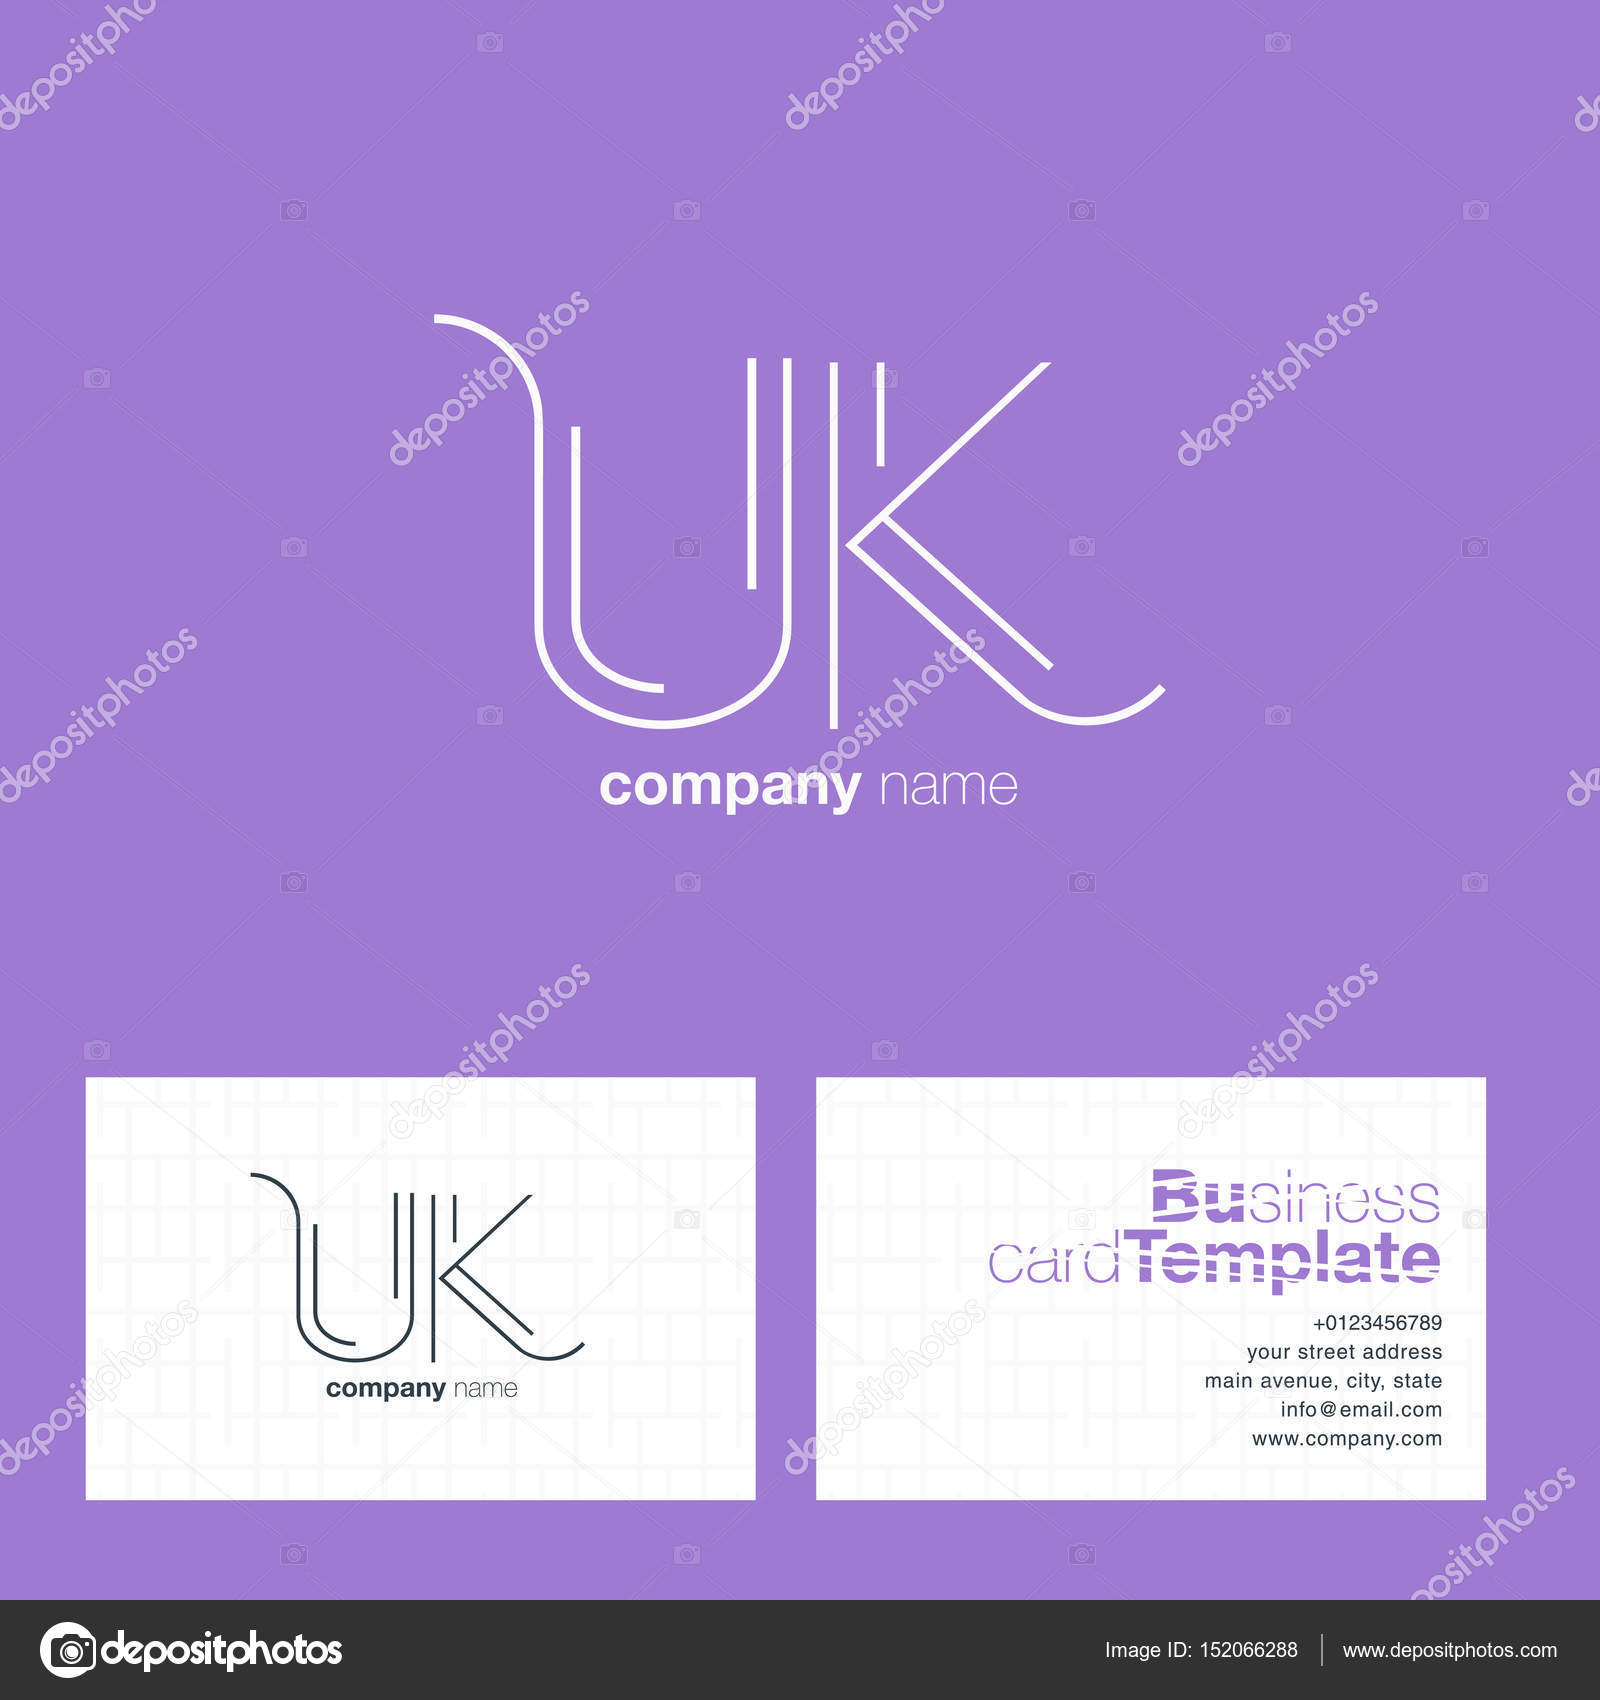 Uk letters logo business card stock vector brainbistro 152066288 uk line letters logo with business card template vector vector by brainbistro colourmoves